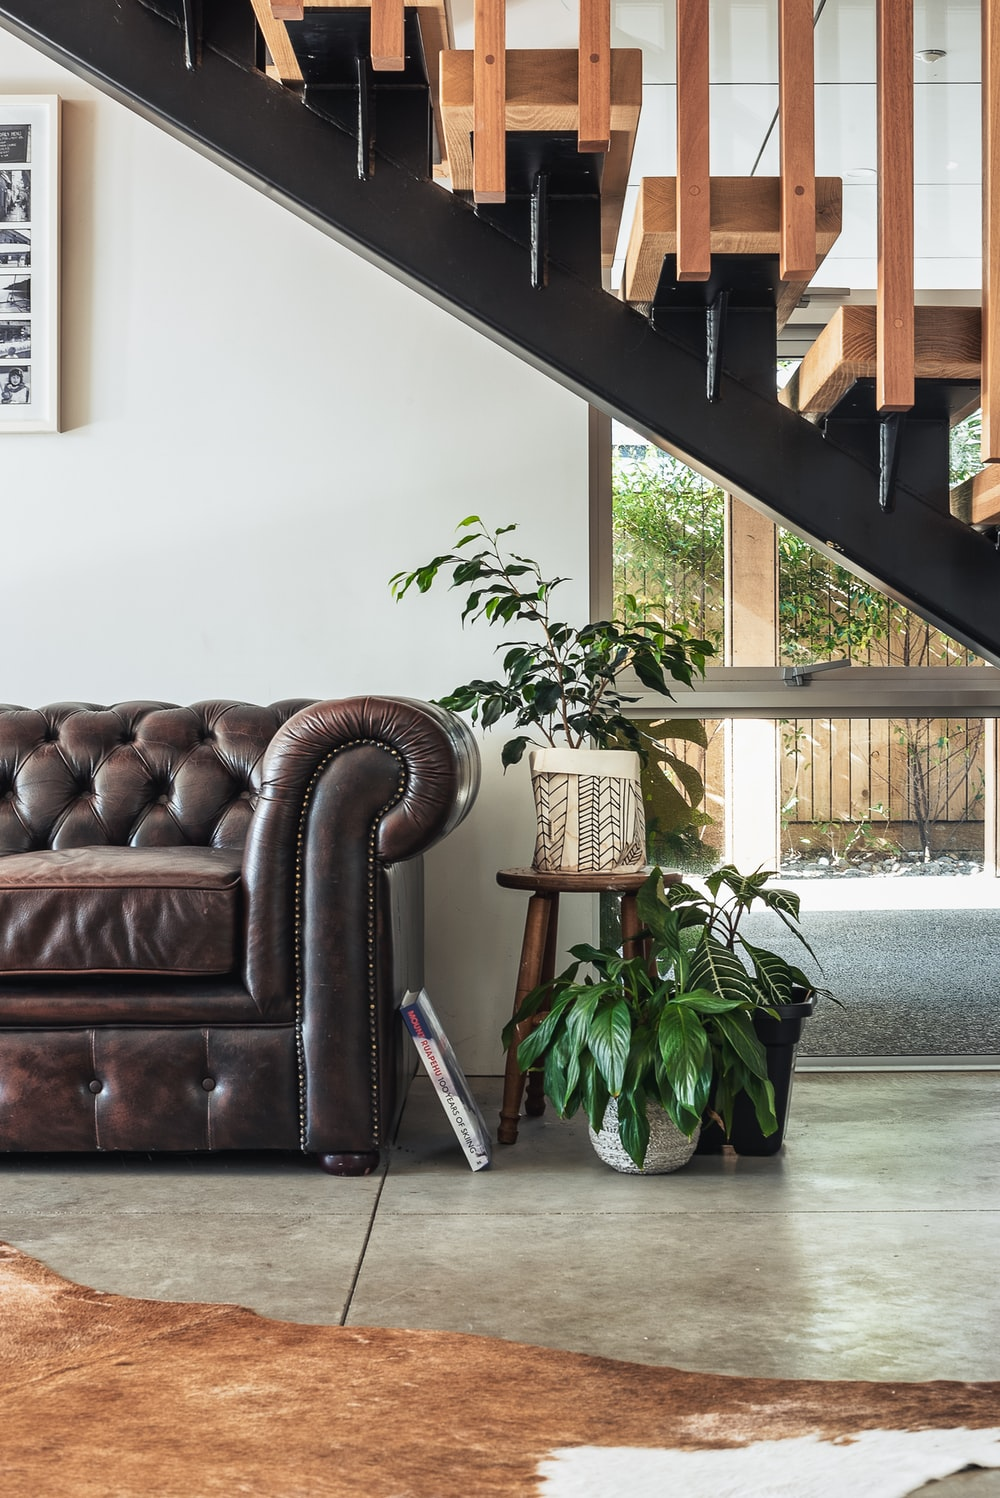 green potted plant beside brown leather couch